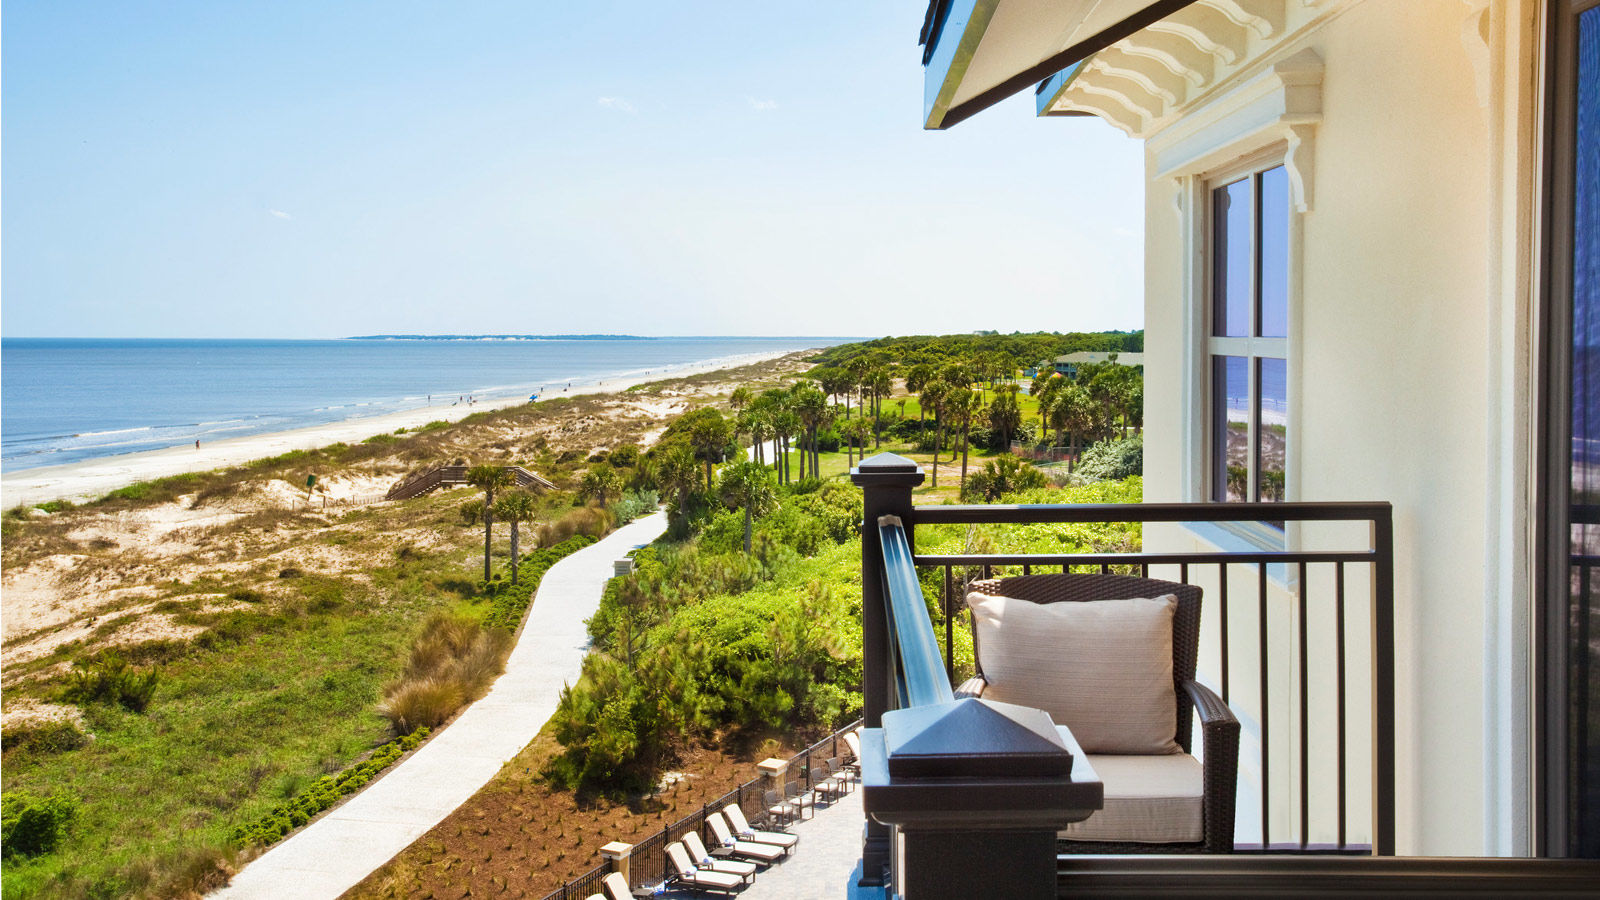 Hotels on Jekyll Island - Premium Ocean Front Room